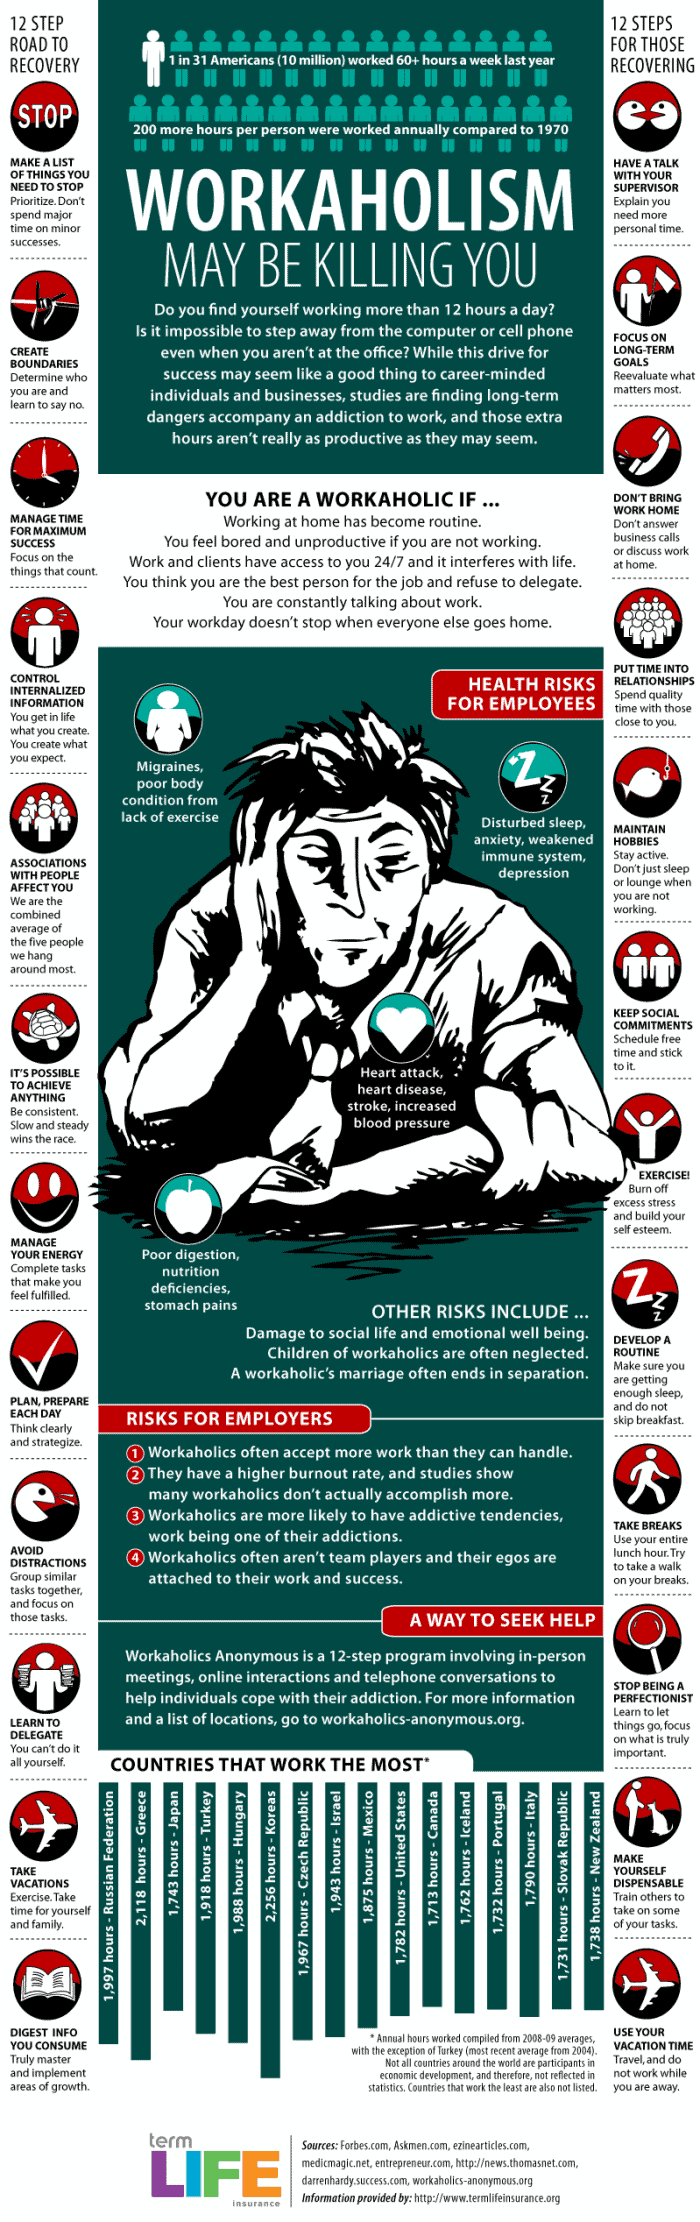 Workaholism-May-Be-Killing-You-Infographic